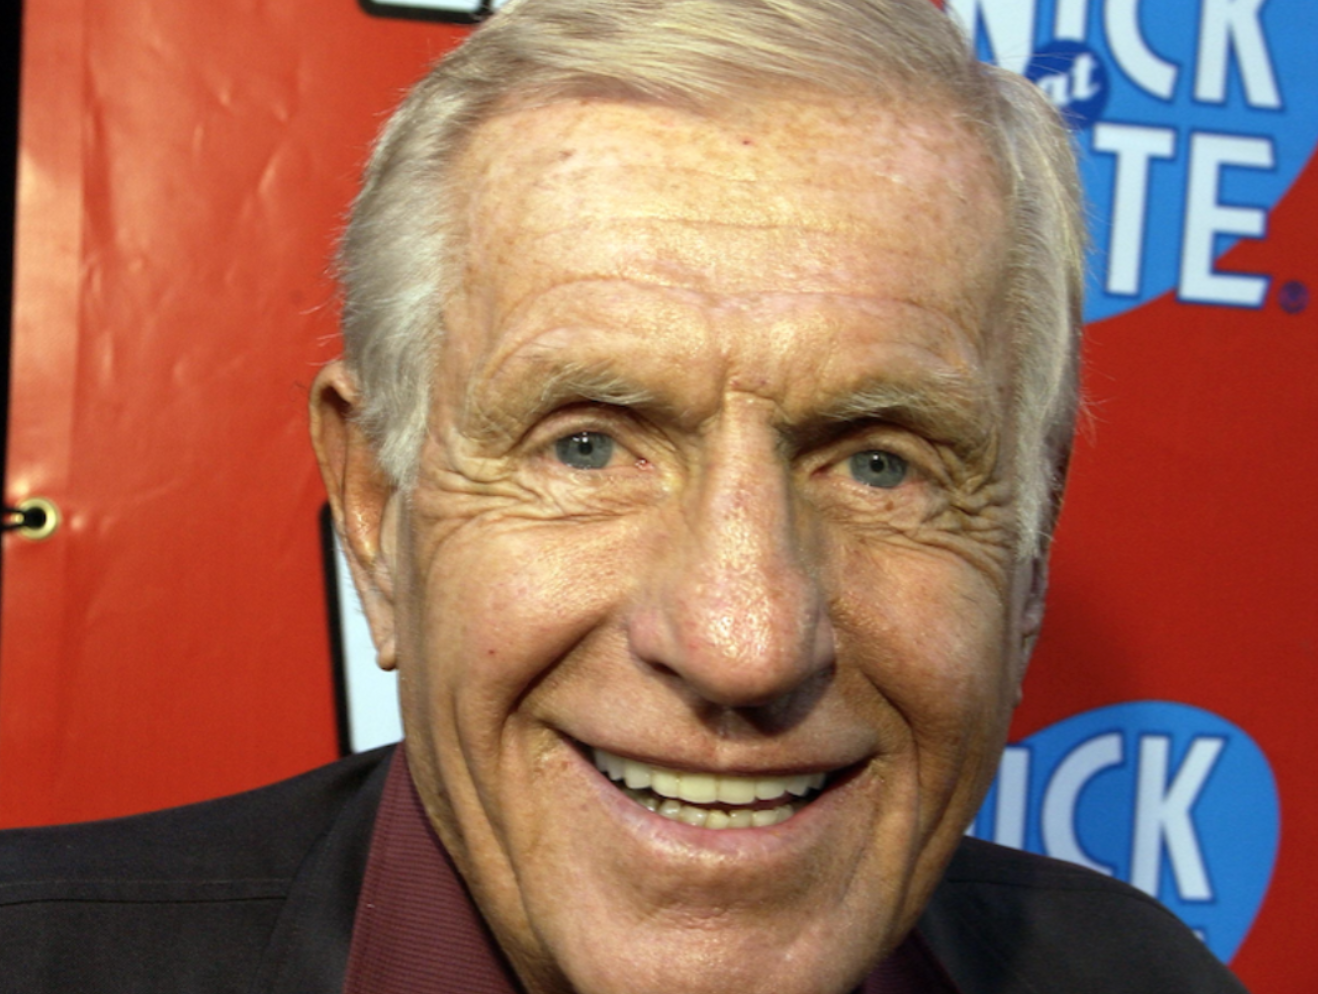 'Coach' Actor Jerry Van Dyke Dies